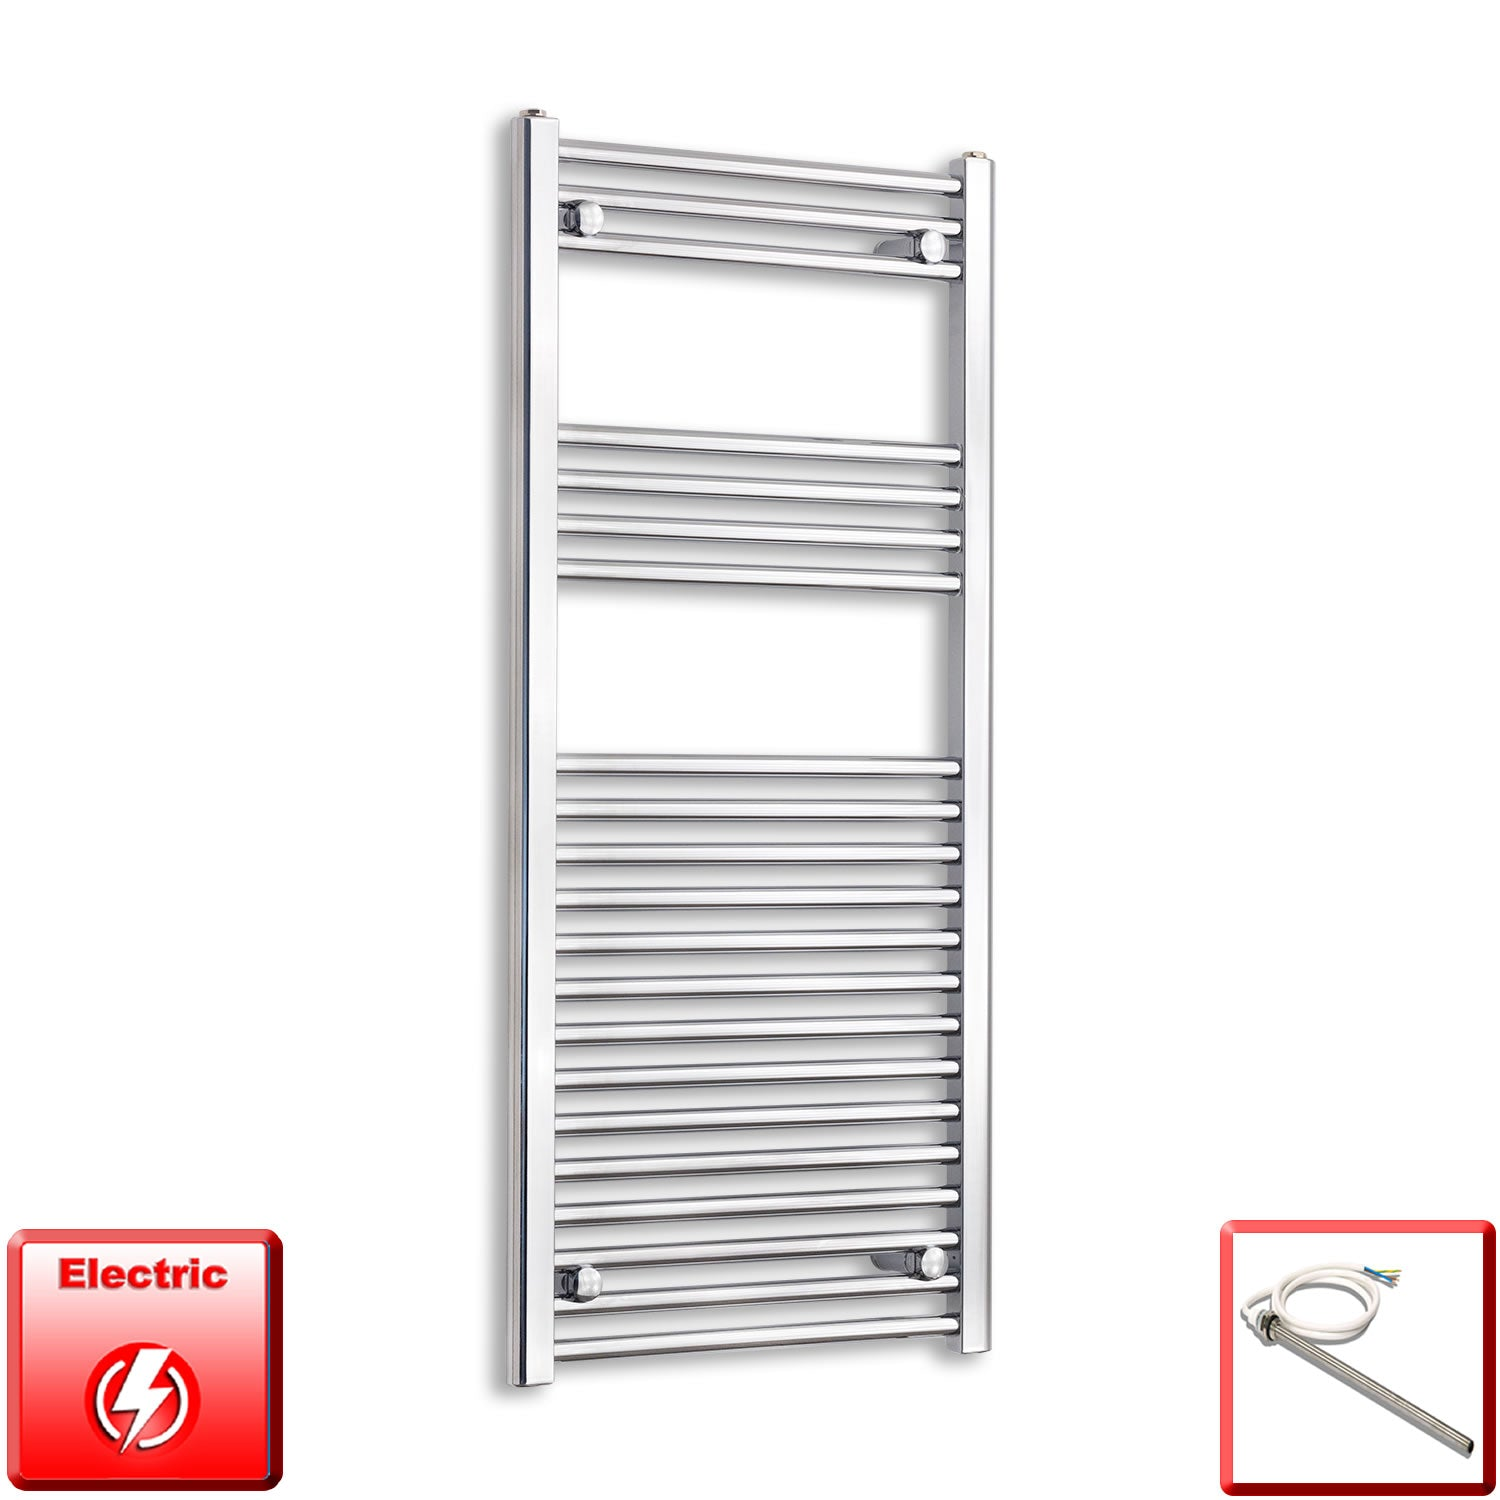 450mm Wide 1100mm High Pre-Filled Black Electric Towel Rail Radiator With Single Heat Element